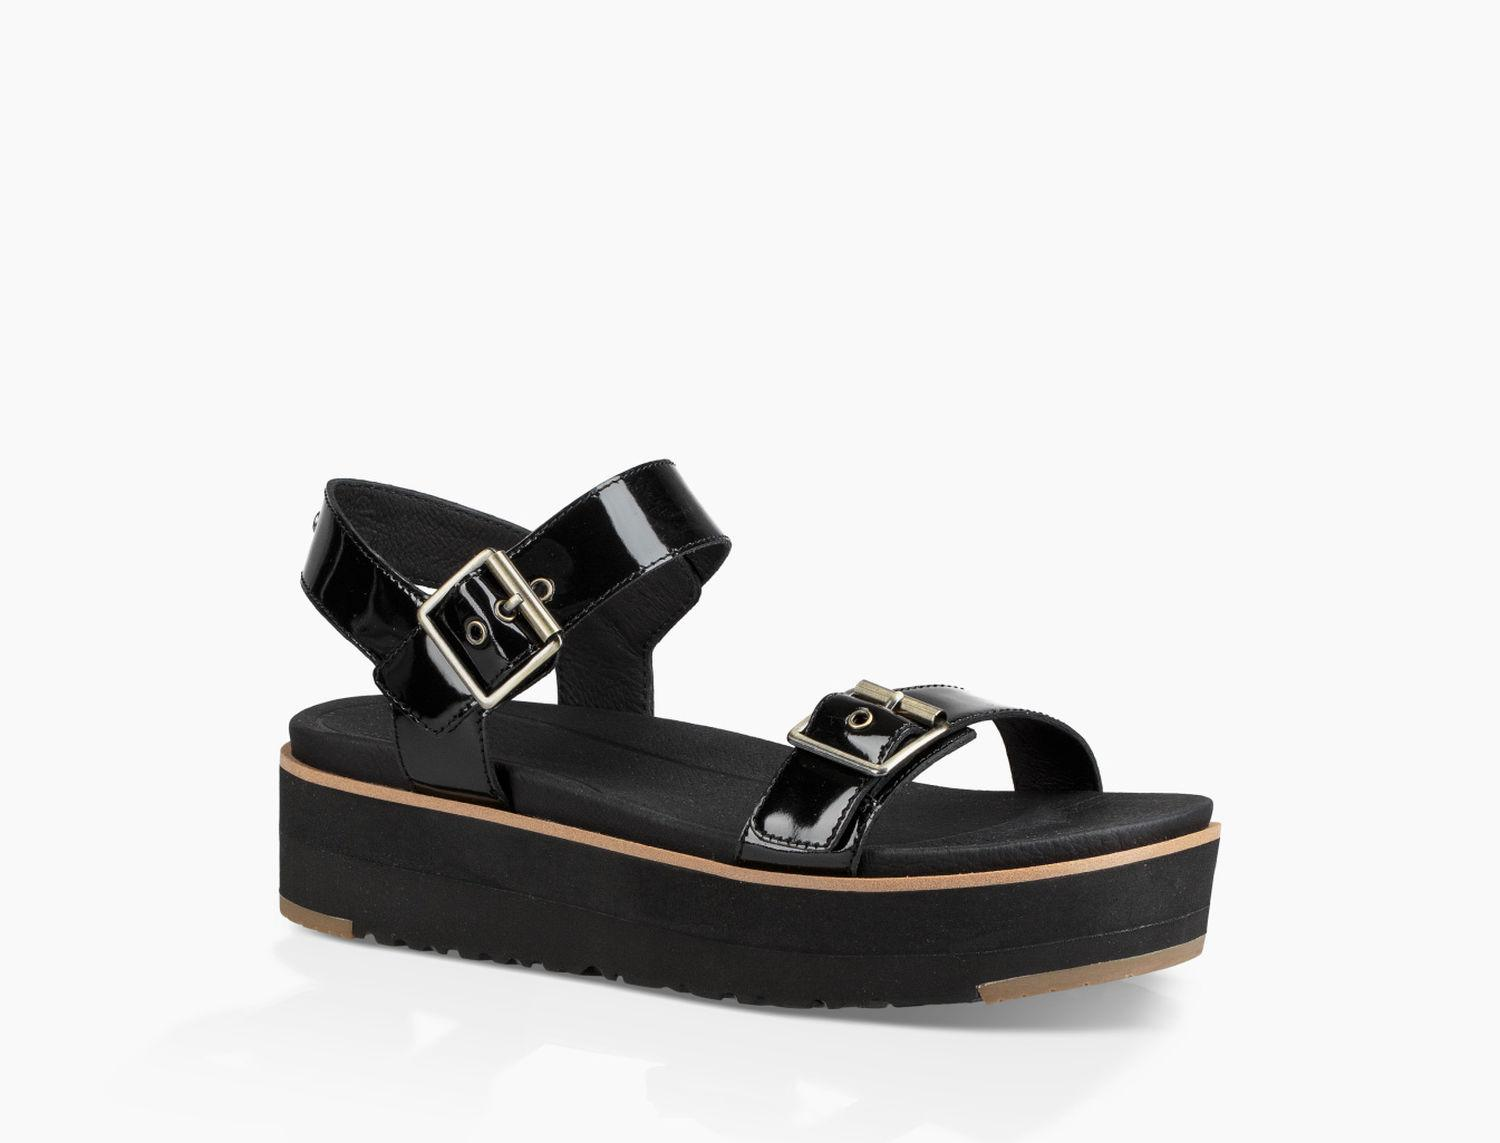 UGG® Angie Leather Sandal Women's Shoes in Black   Buckle